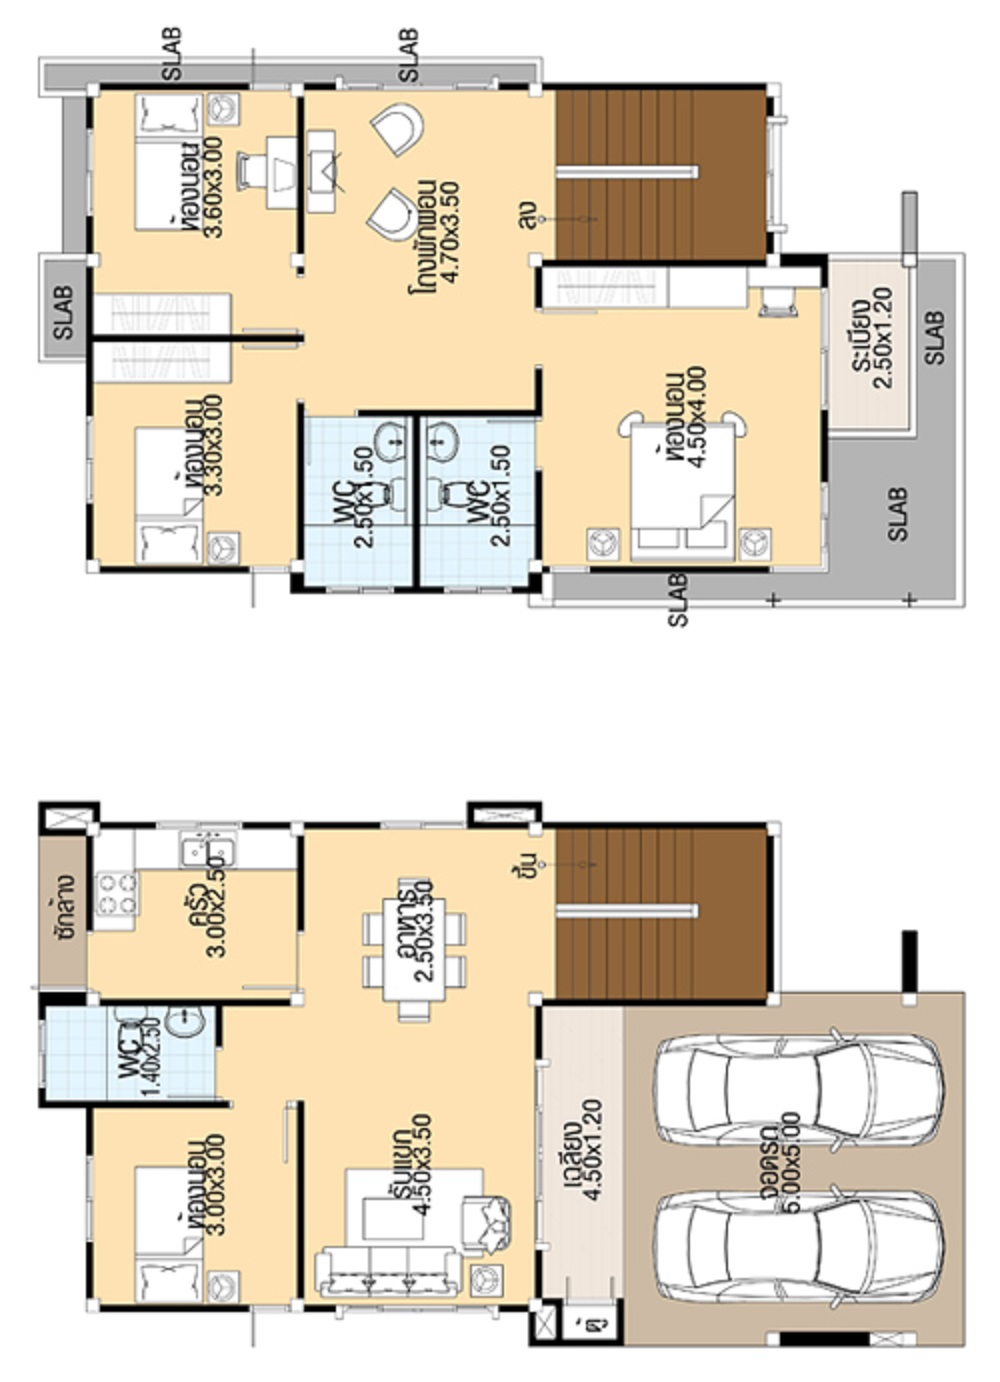 House Plans 3d 7 5x13 With 4 Bedrooms House Plans 3d